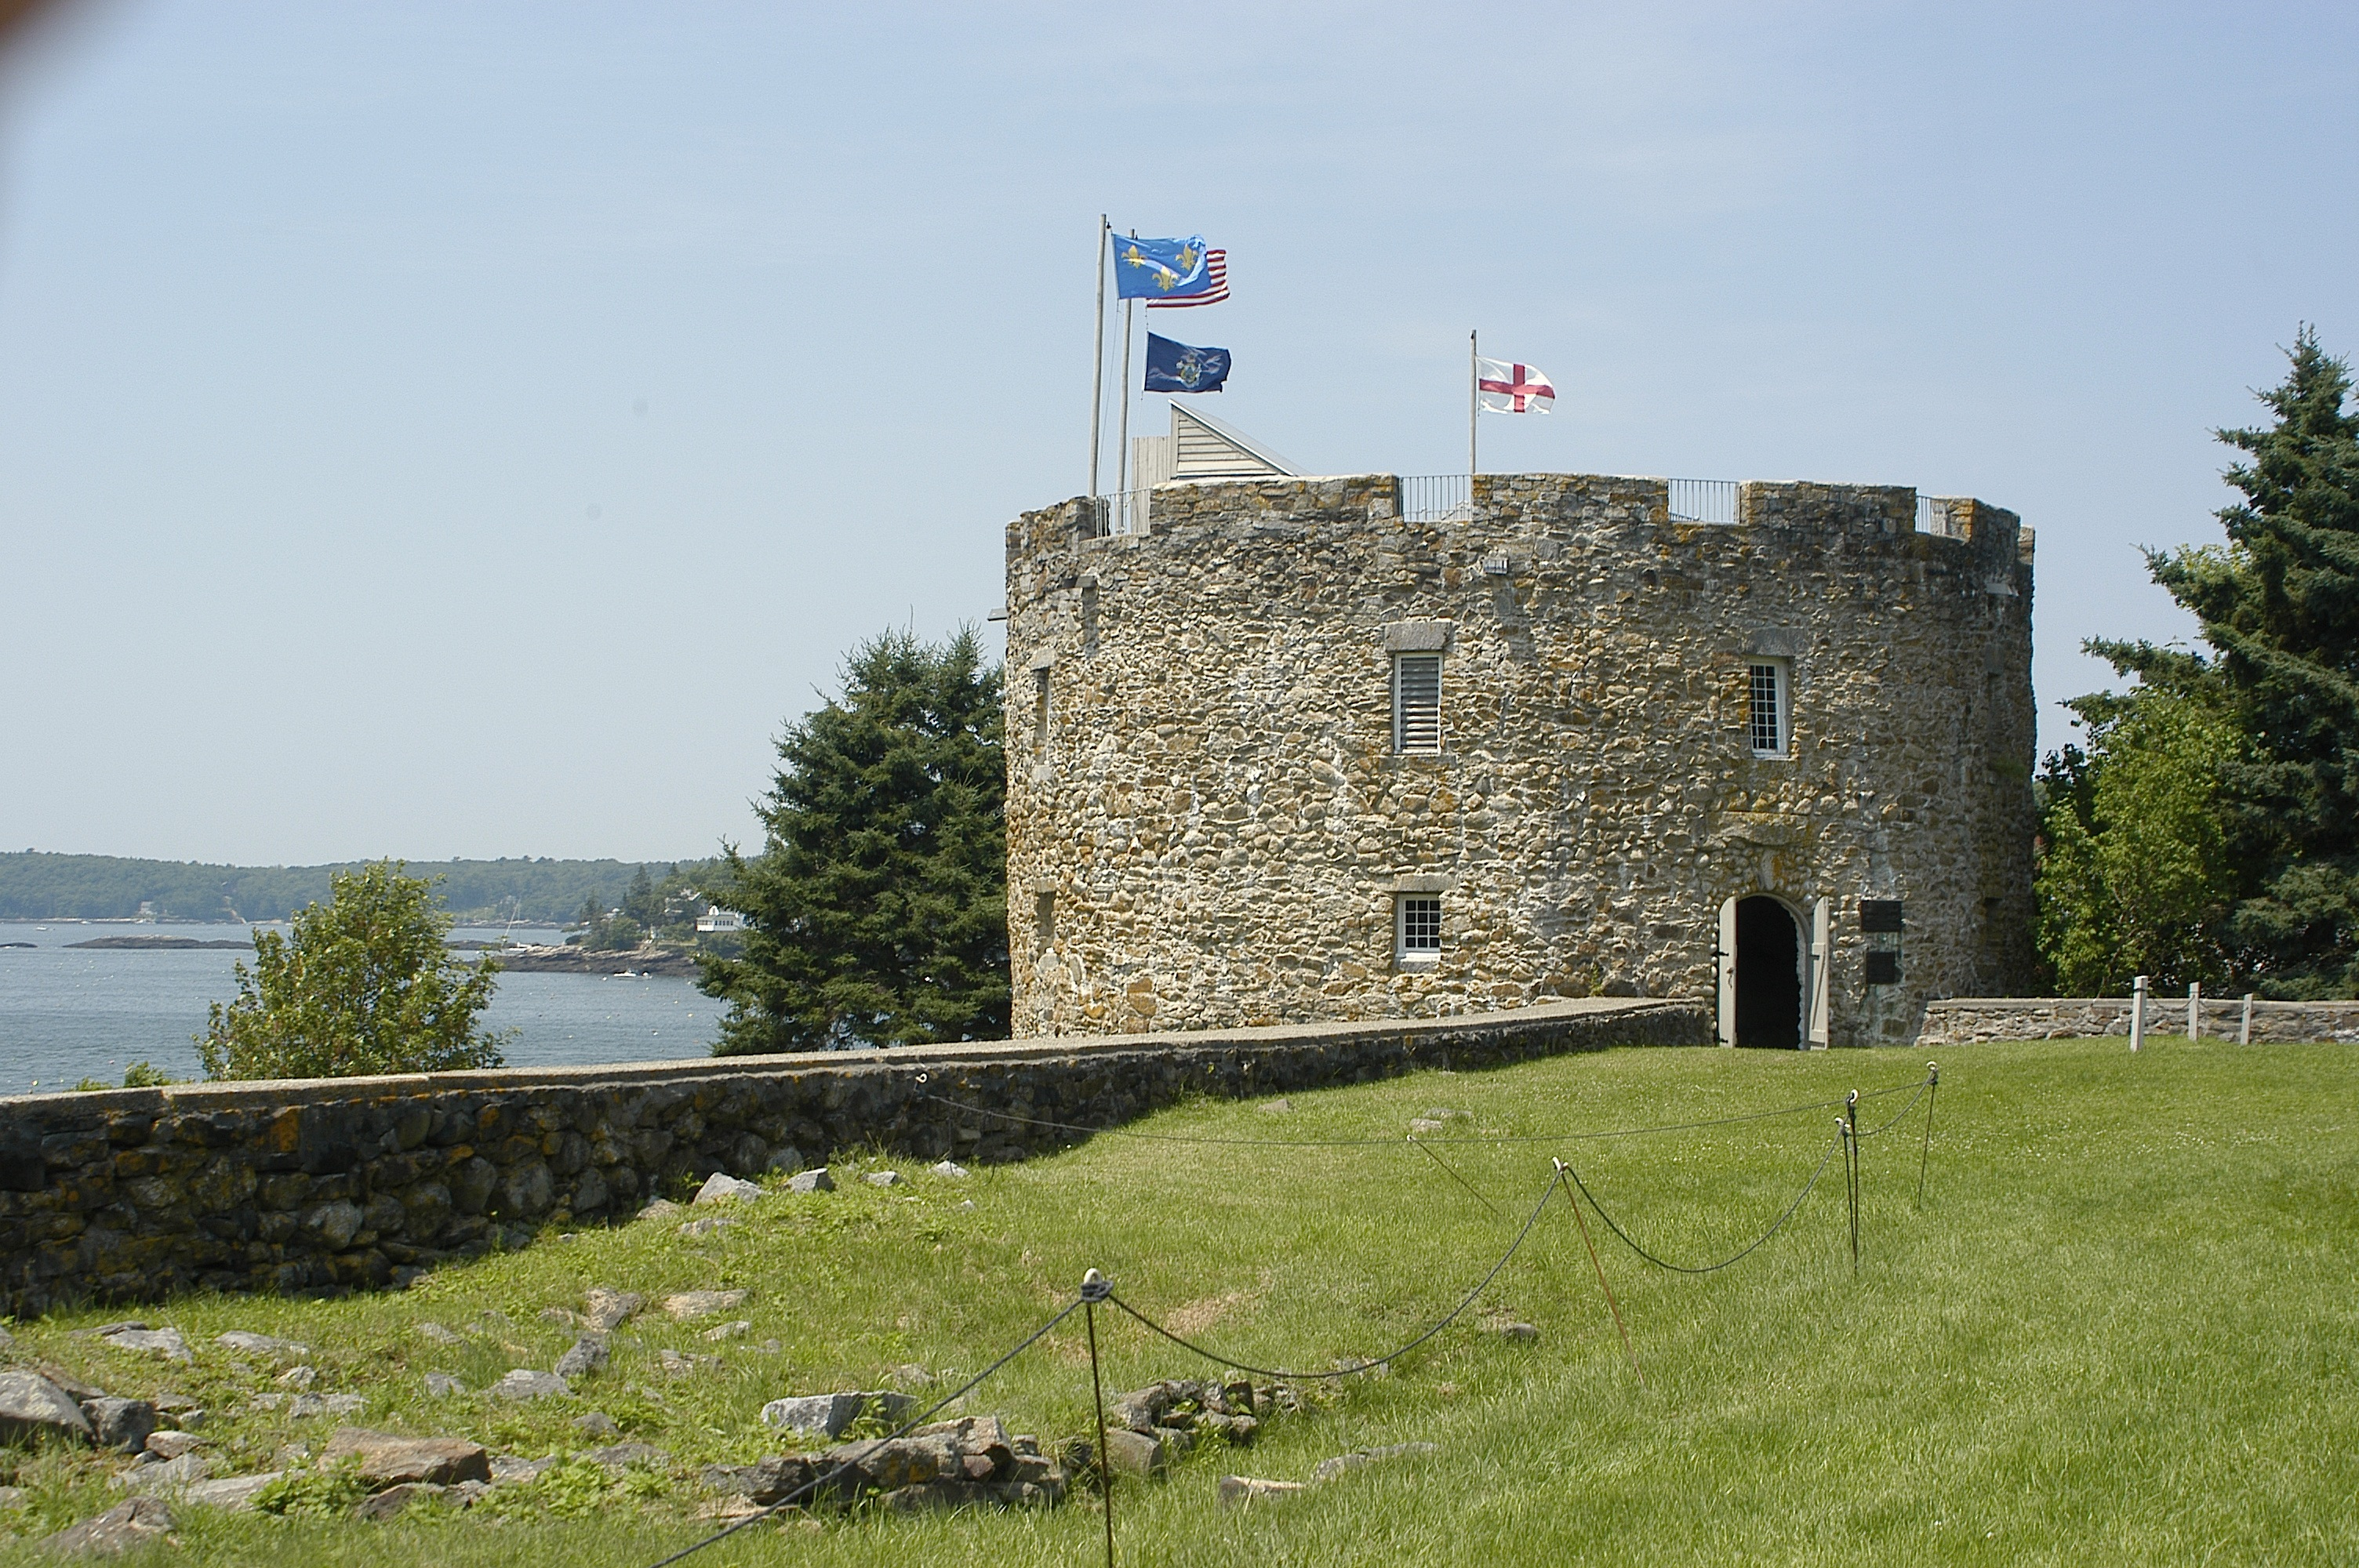 The Colonial Pemaquid State Historic Site